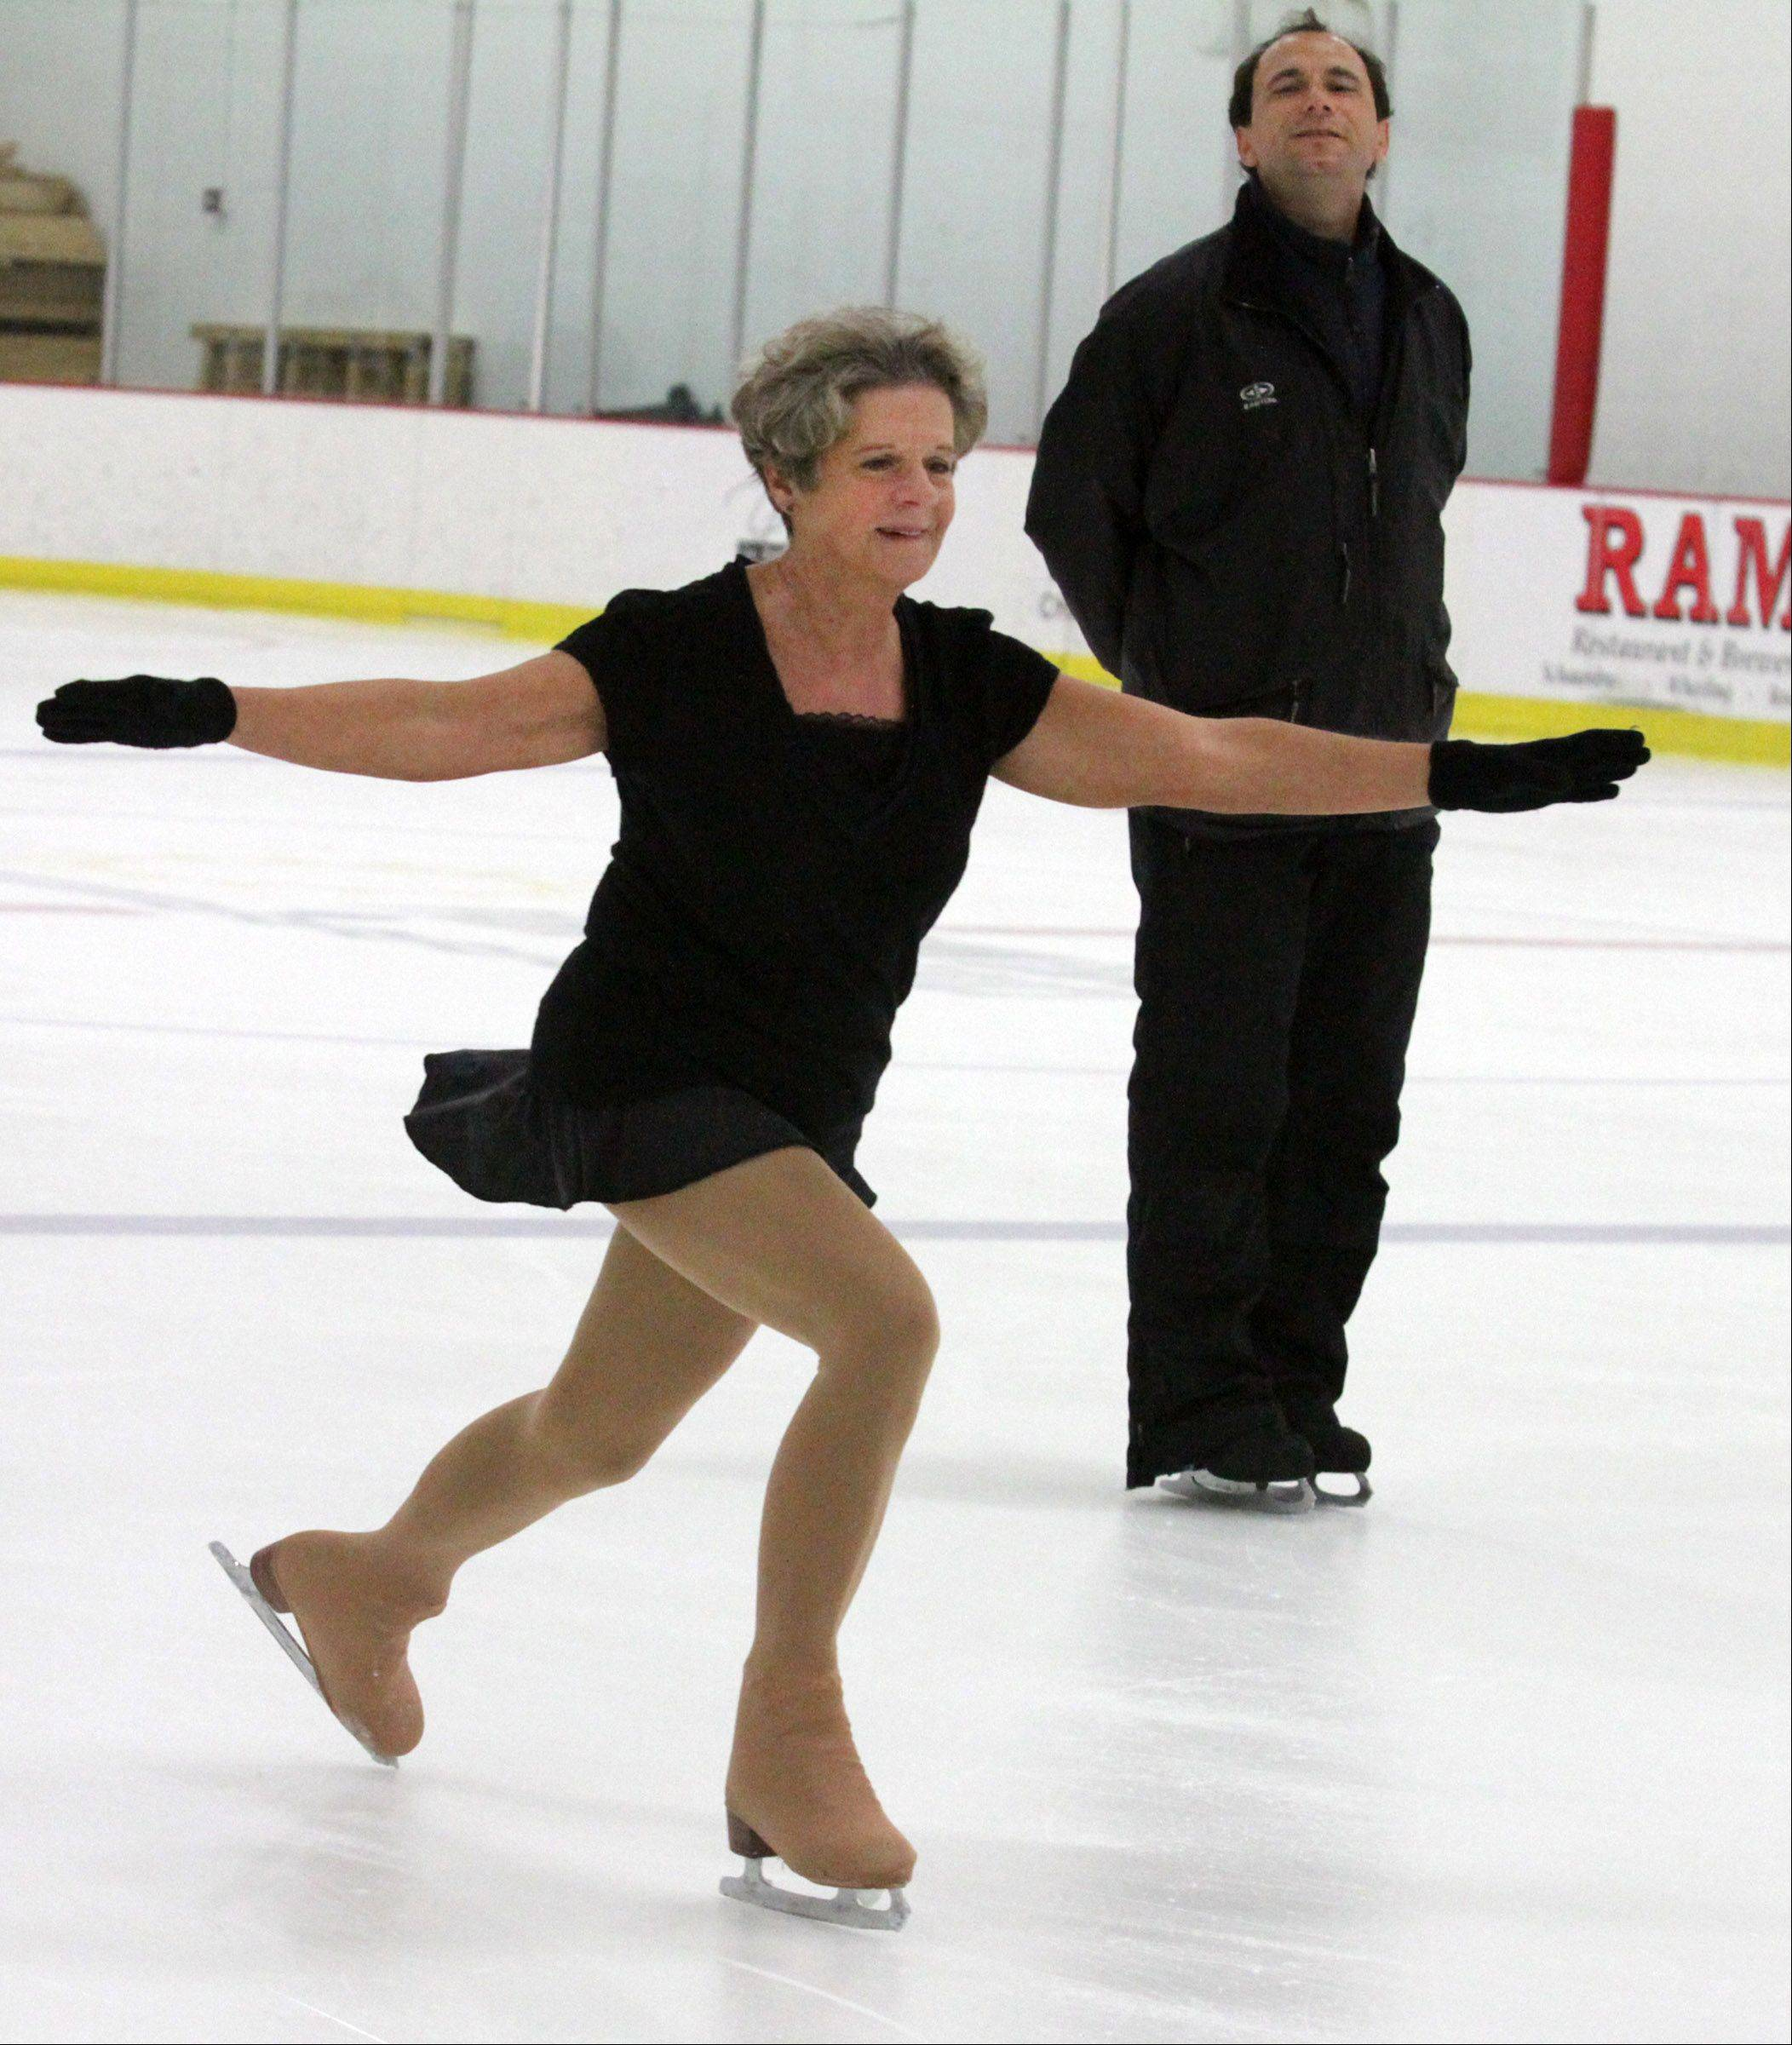 Mary Ellen Gabler trains with former Russian skater Oleg Podvalny, who also coaches Gracie Gold, the reigning U.S. silver medalist.